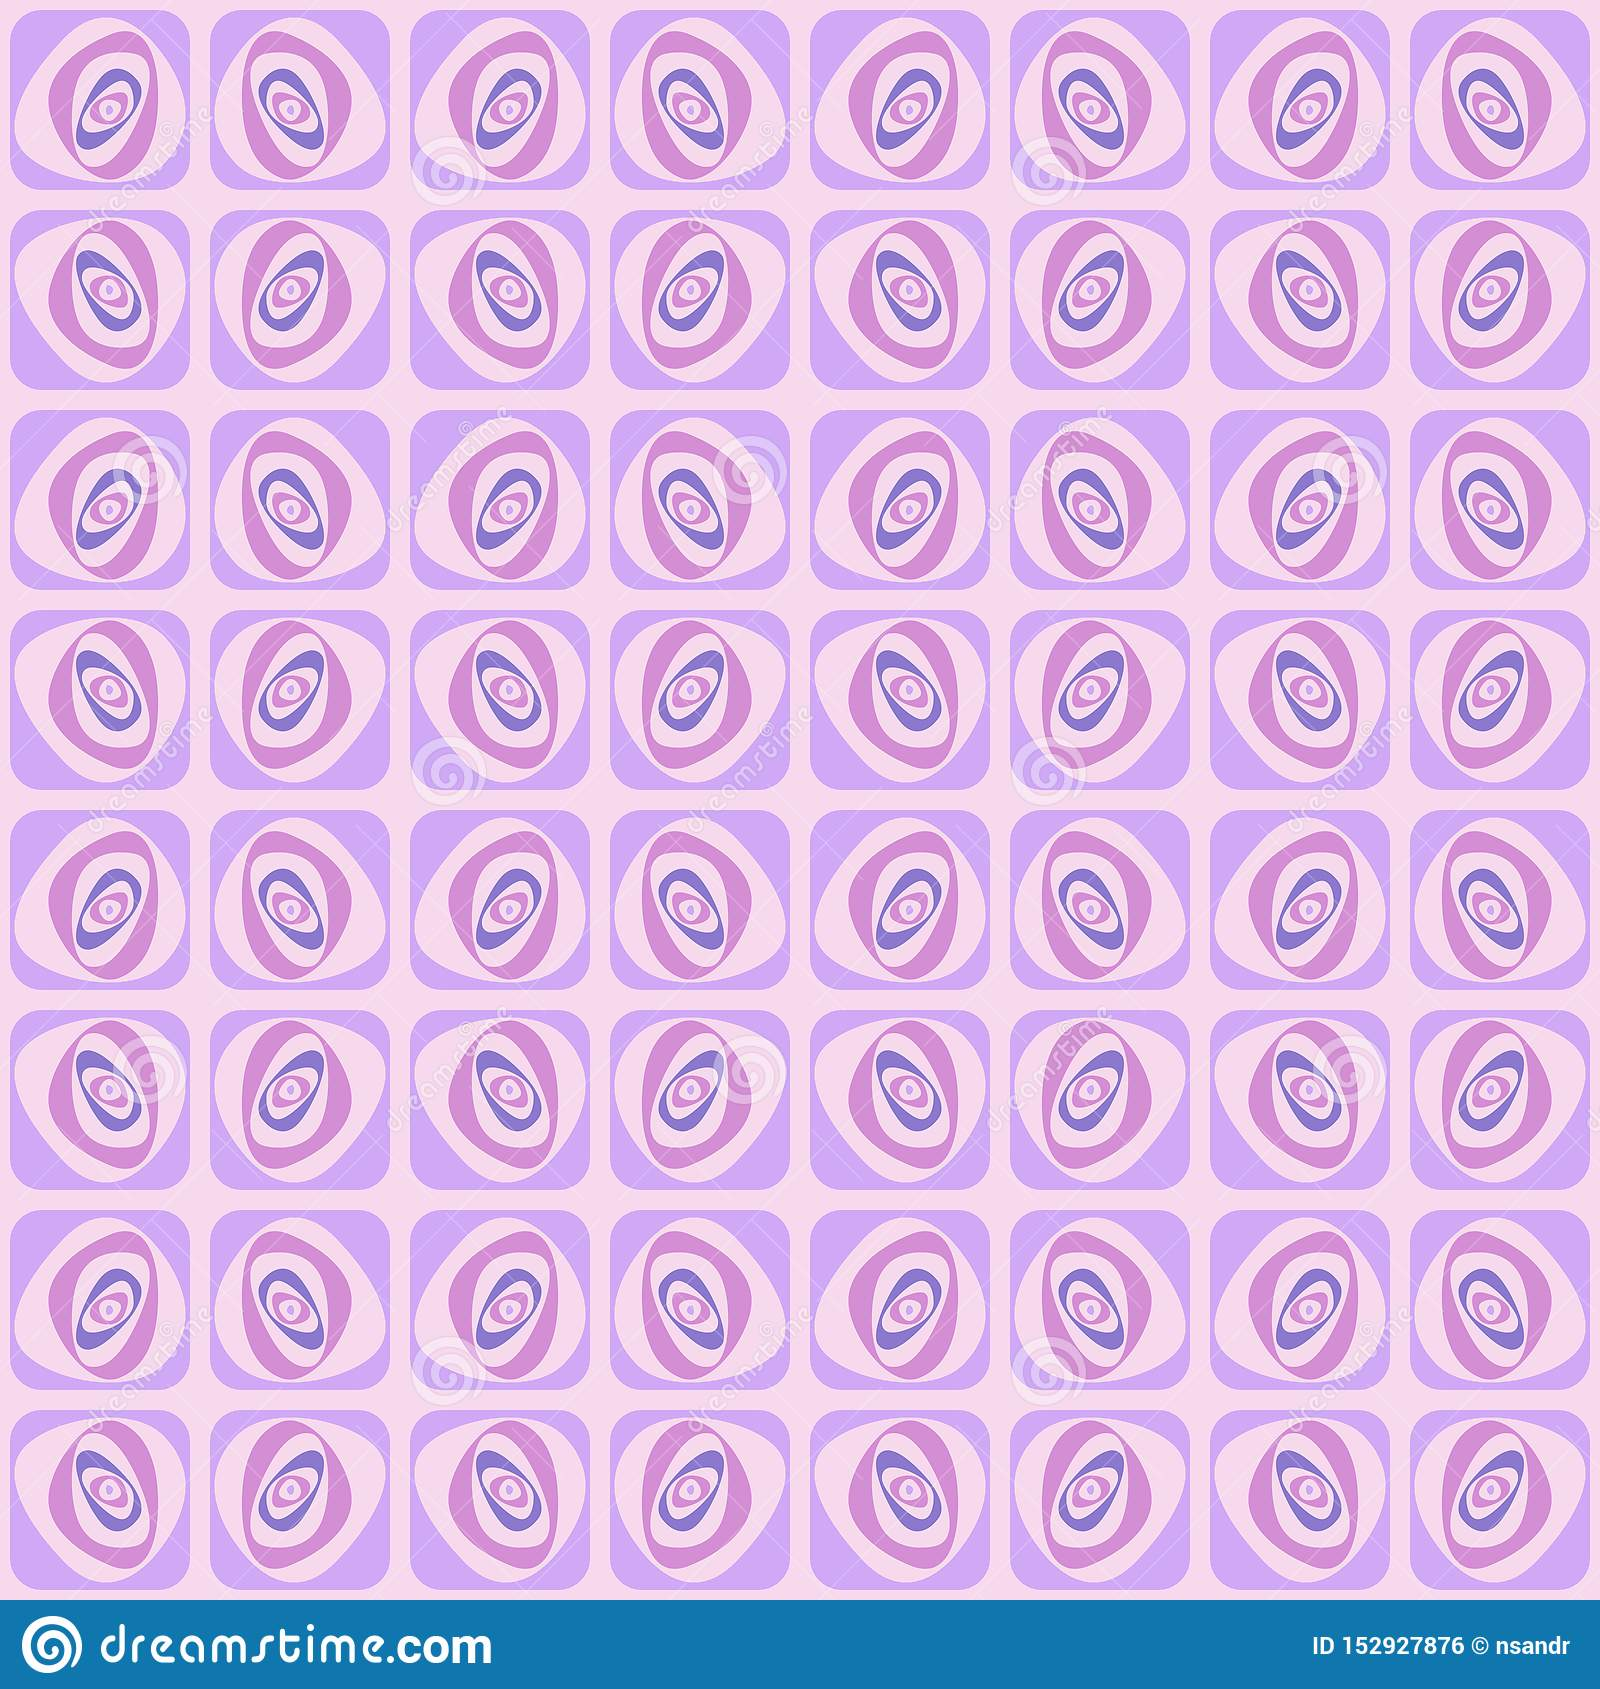 Vector swirl seamless pattern. Retro abstract geometric ornament for textile, prints, wallpaper, wrapping paper, web etc